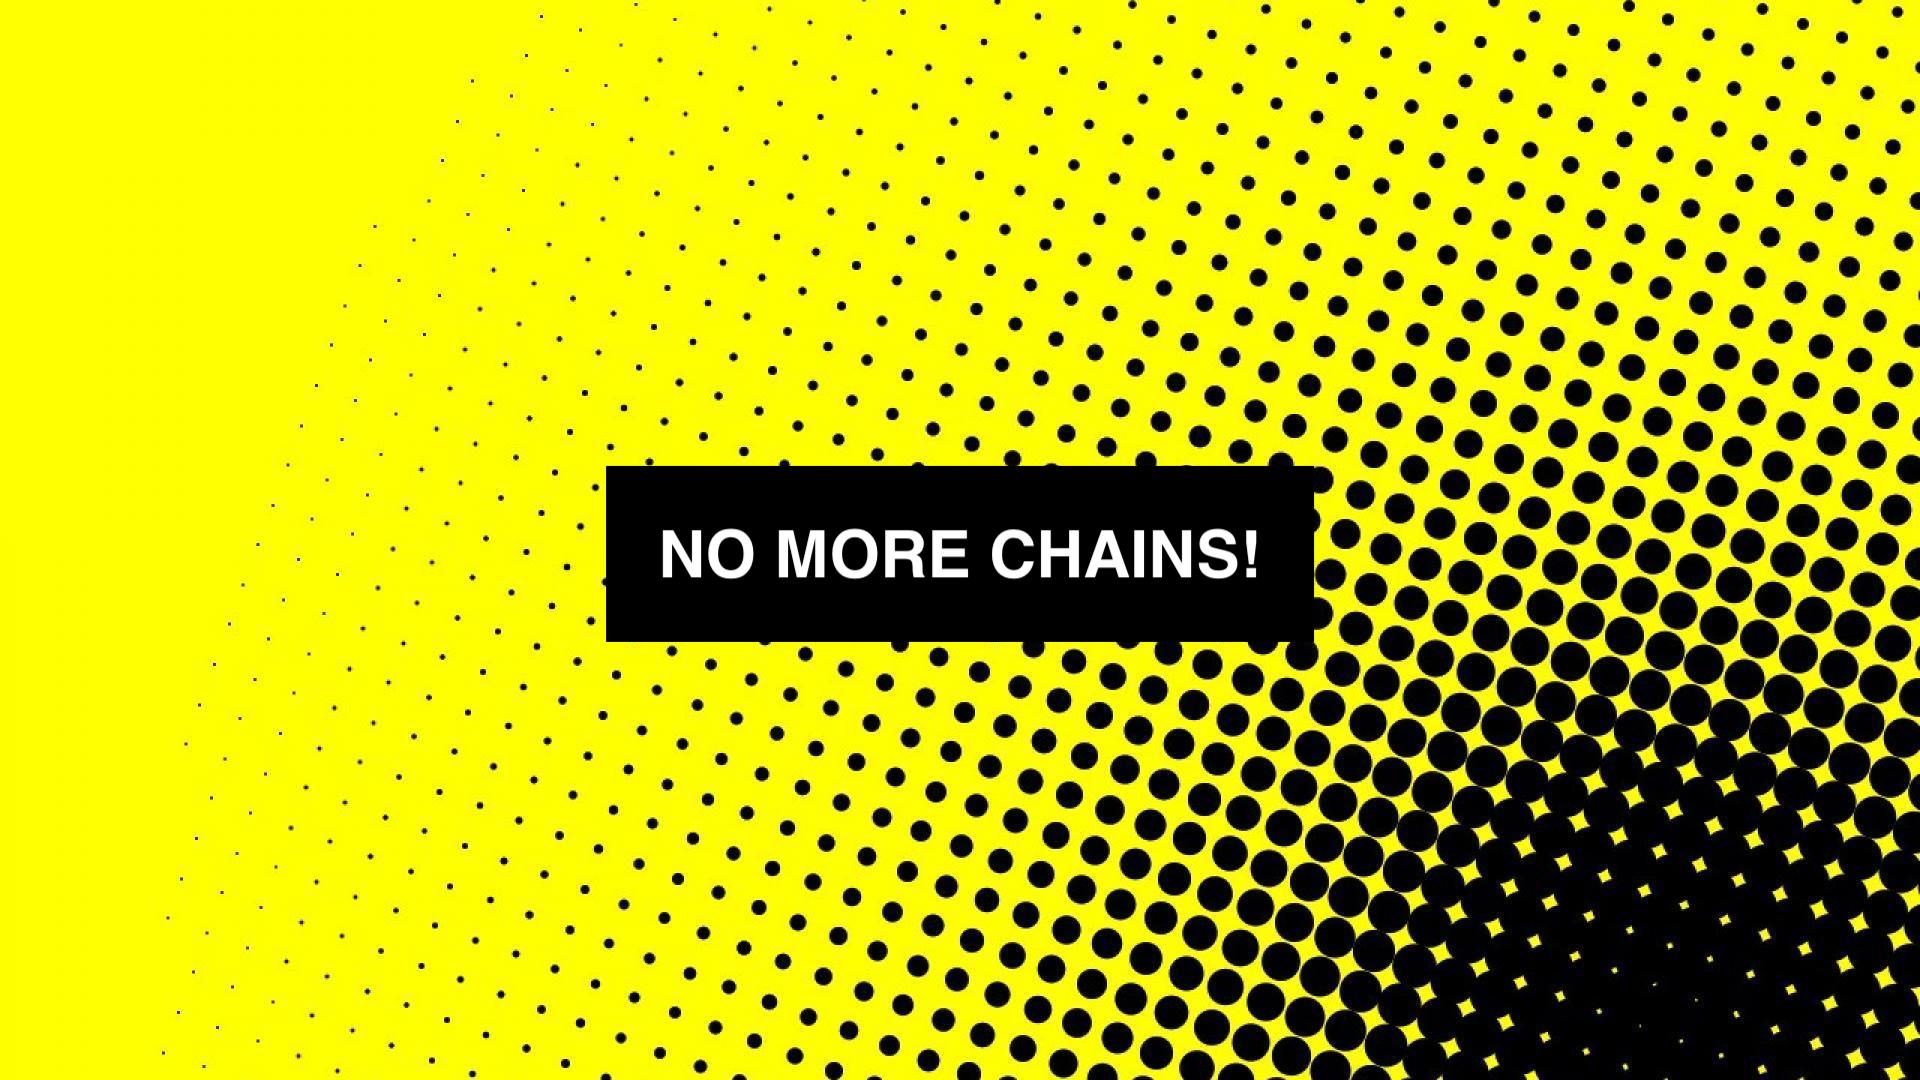 """NO MORE CHAINS!"" - 7/28/19"